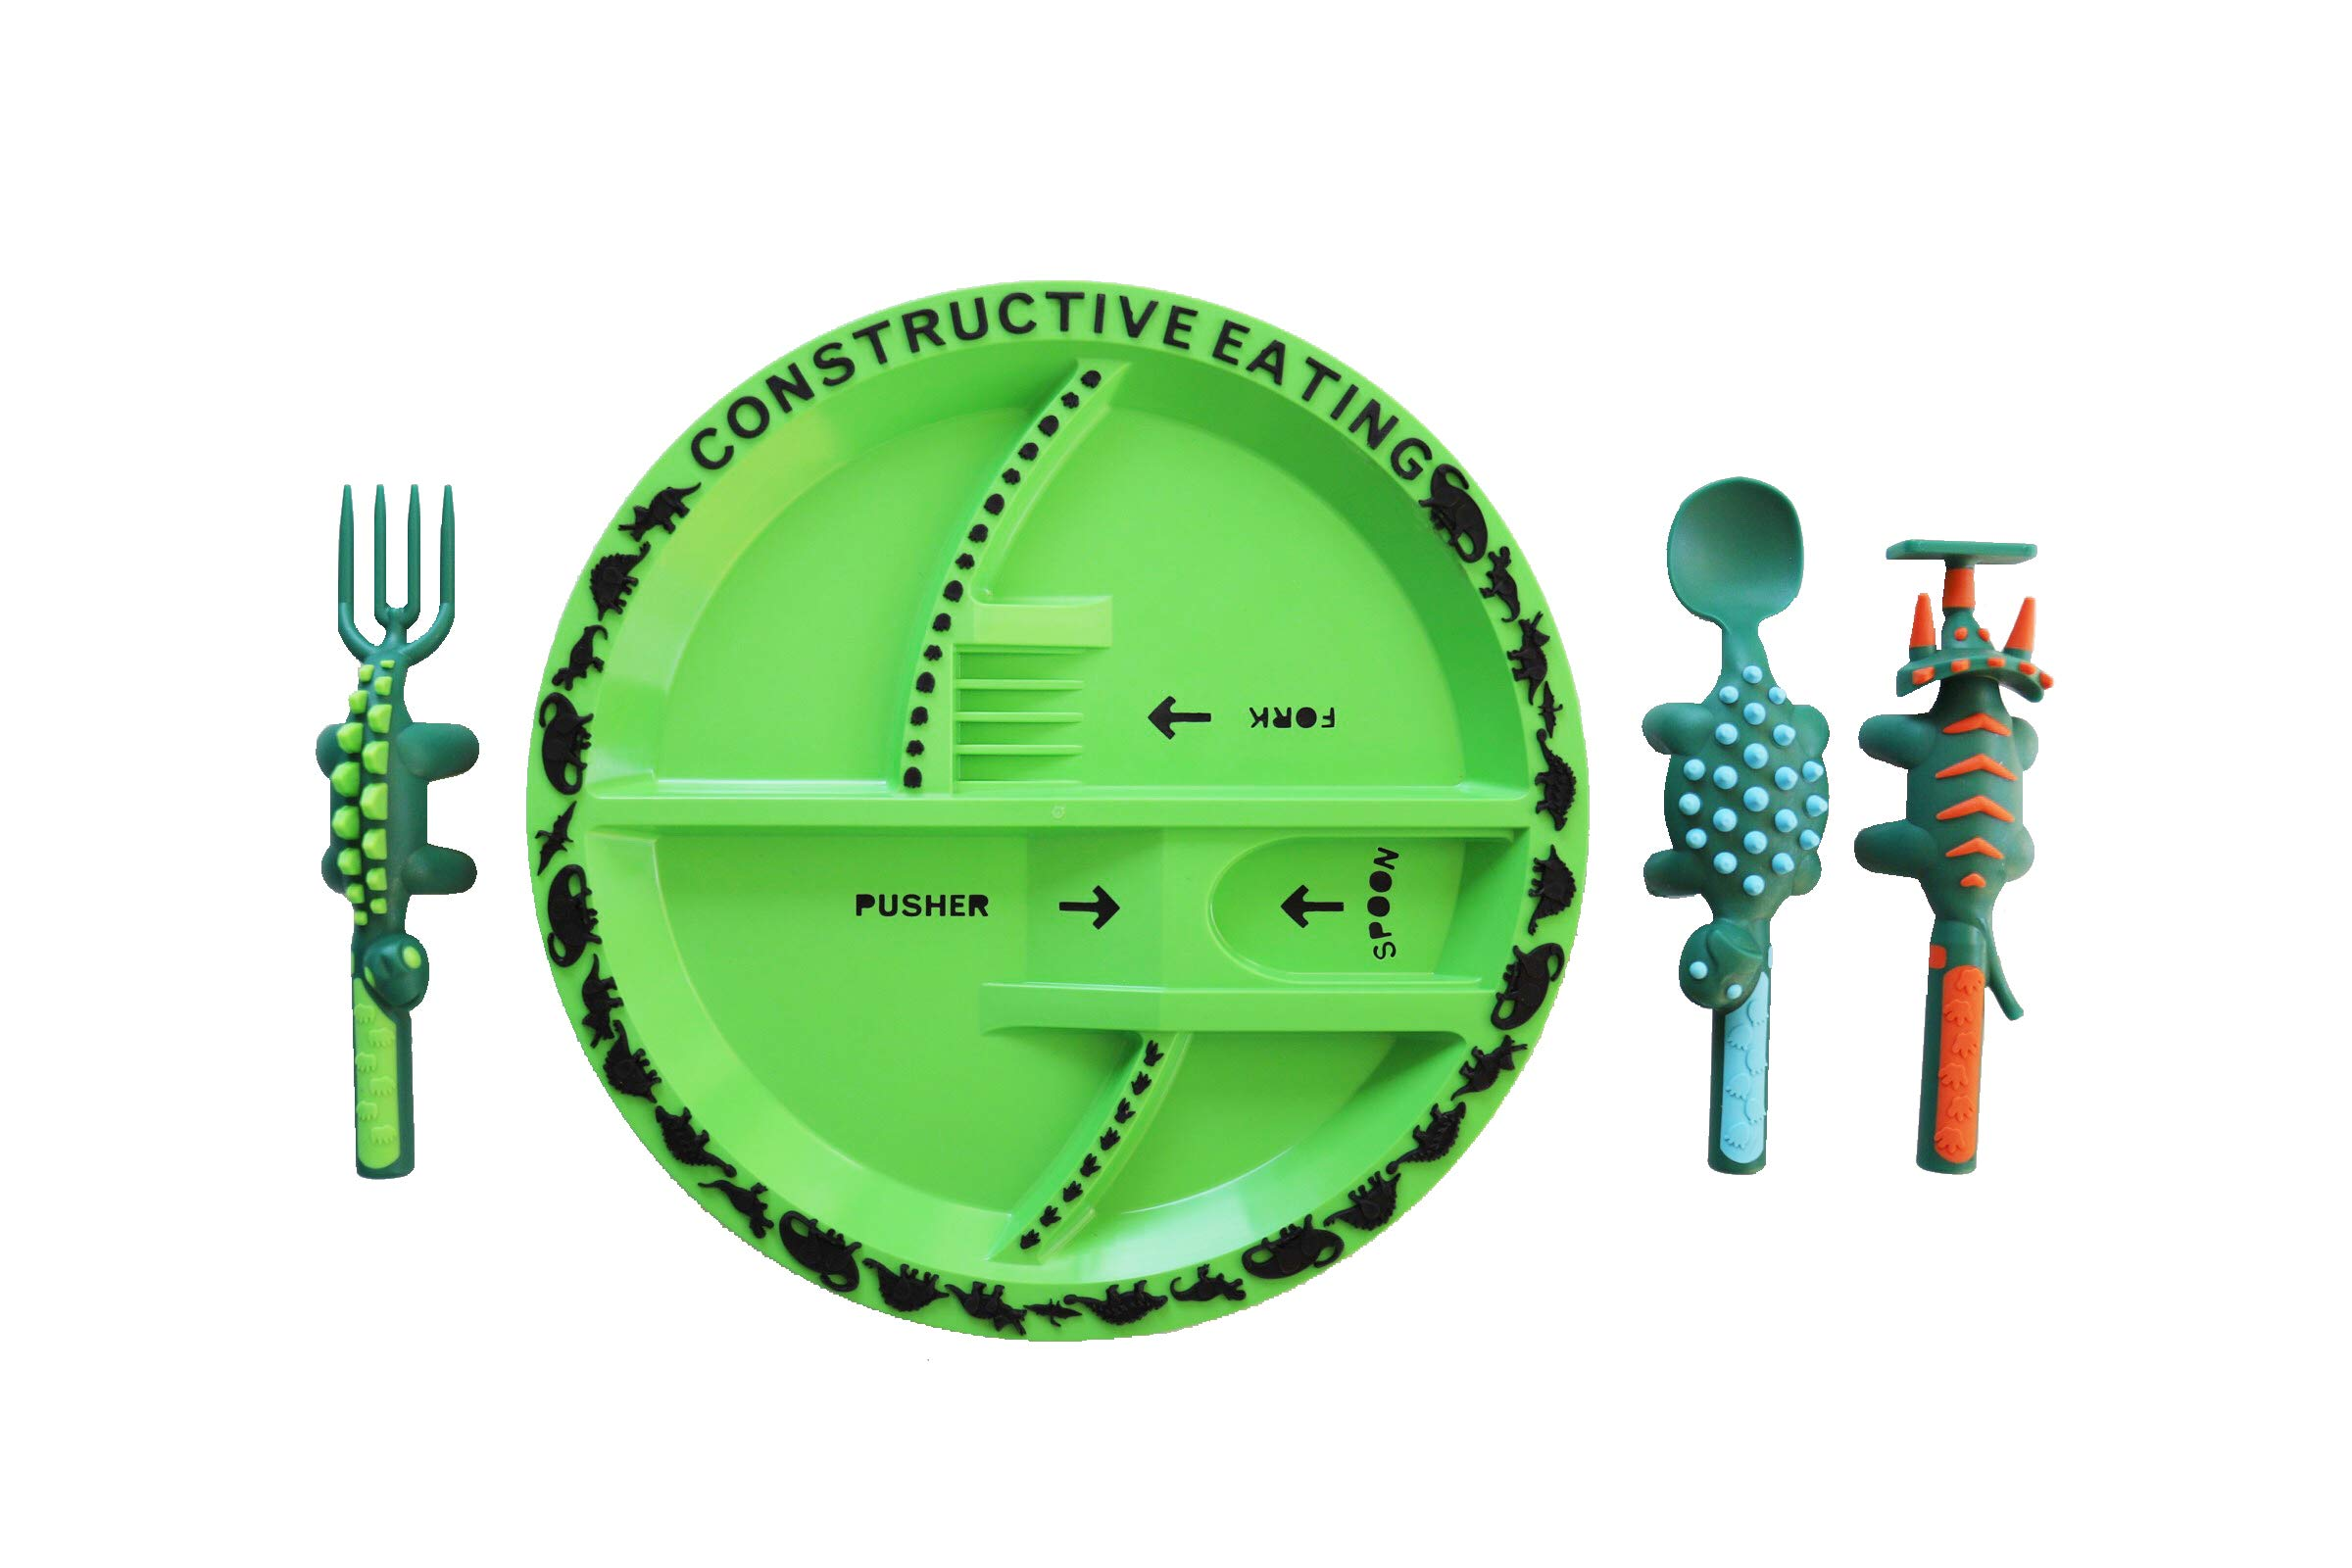 Constructive Eating Dinosaur Combo with Utensil Set and Plate for Toddlers, Infants, Babies and Kids - Flatware Set is Made with FDA Approved Materials for Safe and Fun Eating by Constructive Eating